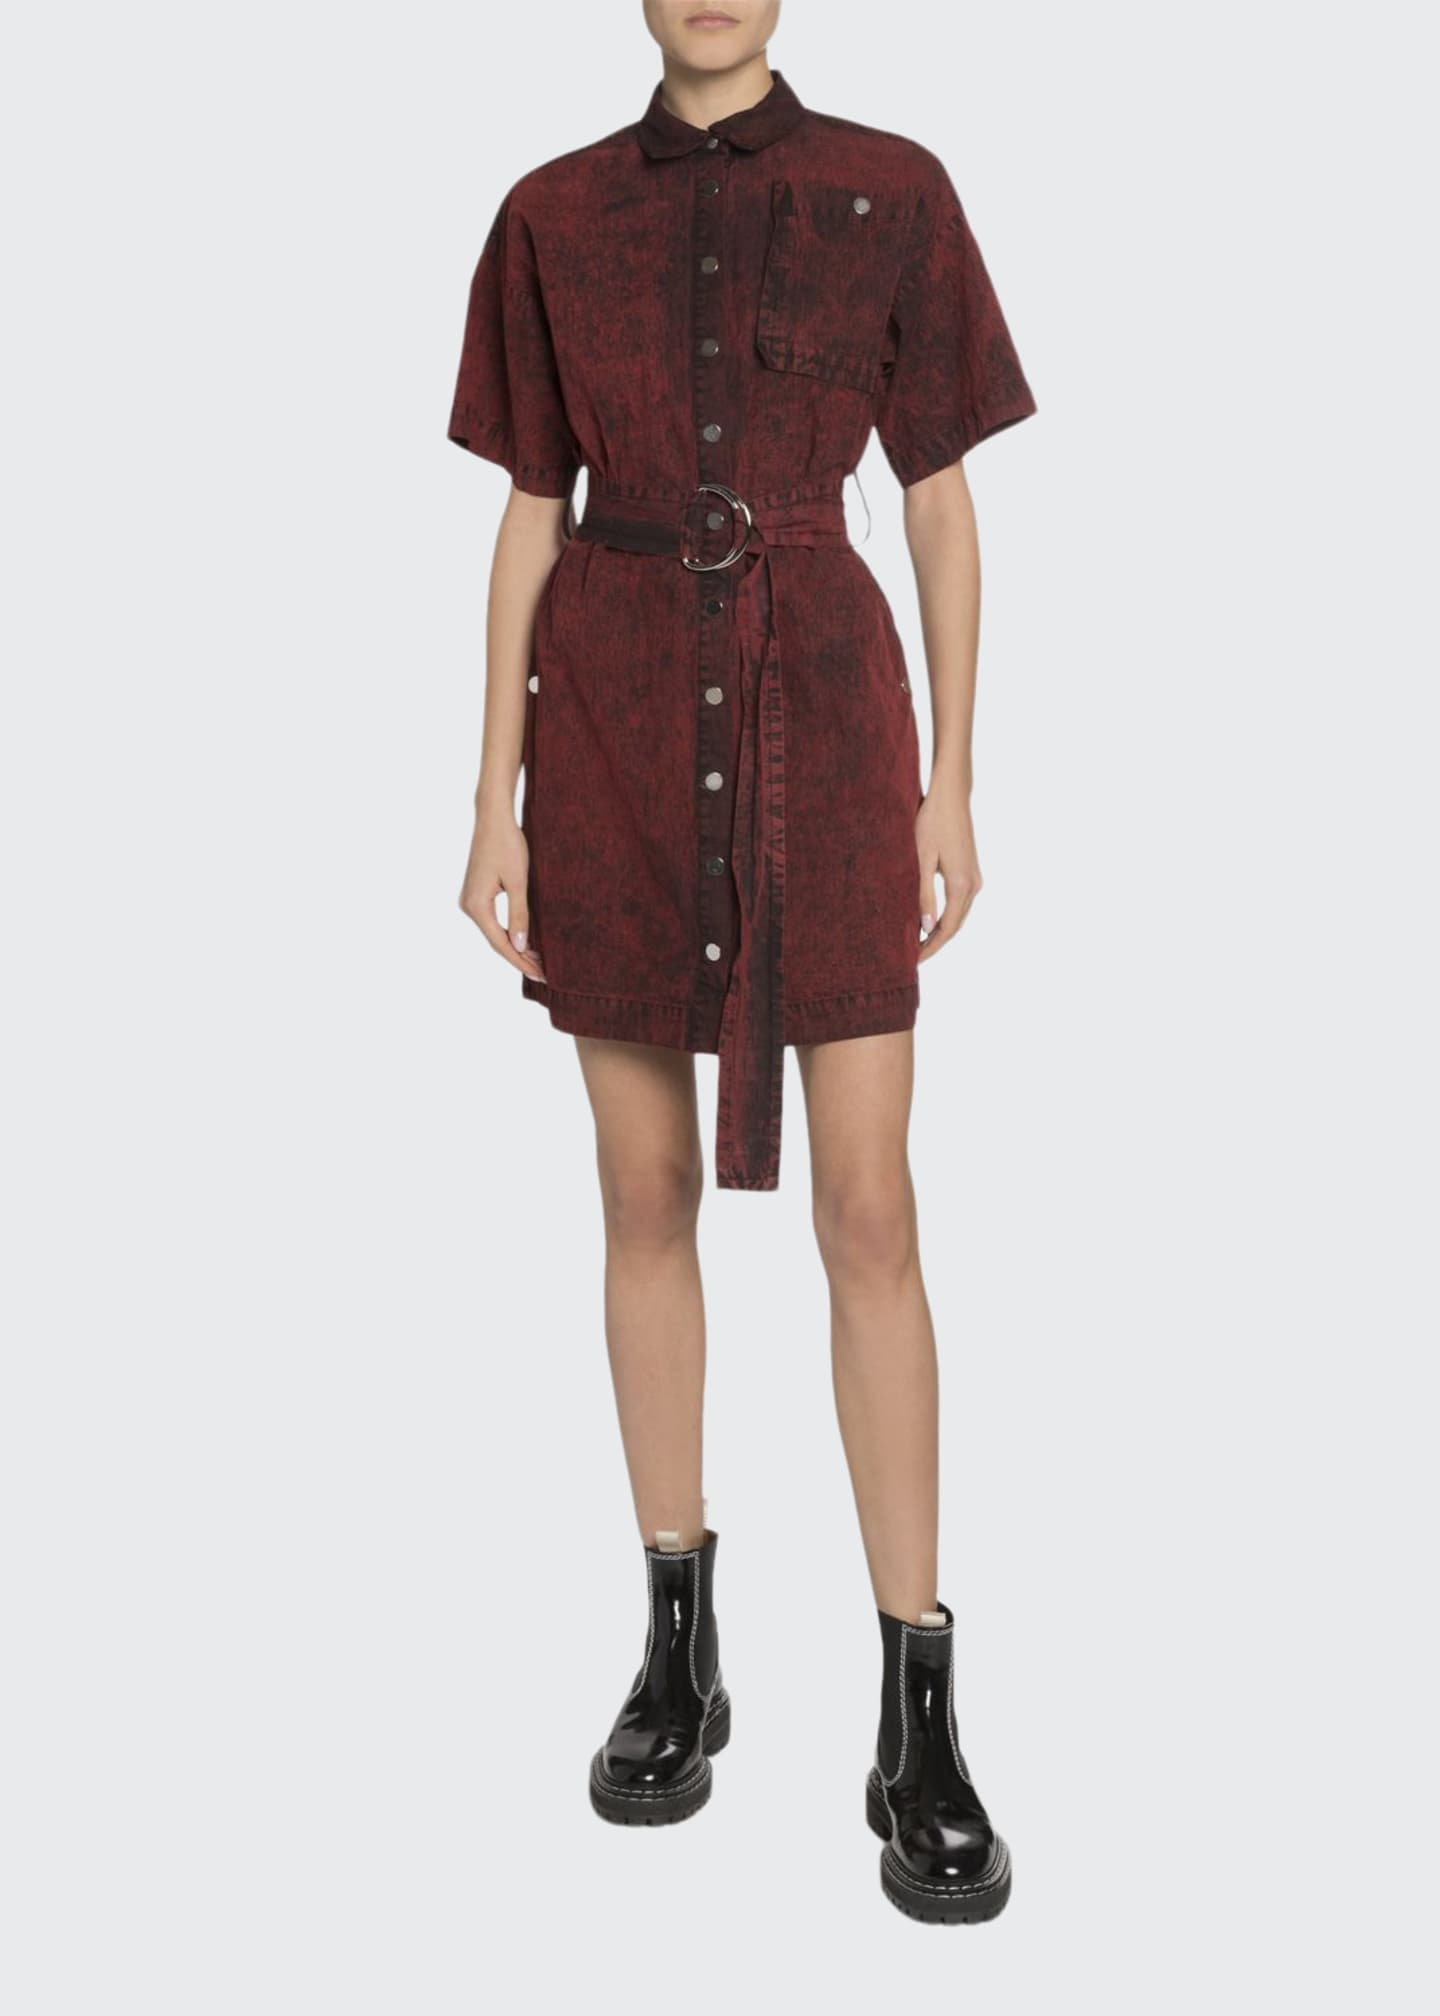 Proenza Schouler White Label Short-Sleeve Belted Snap-Front Shirt